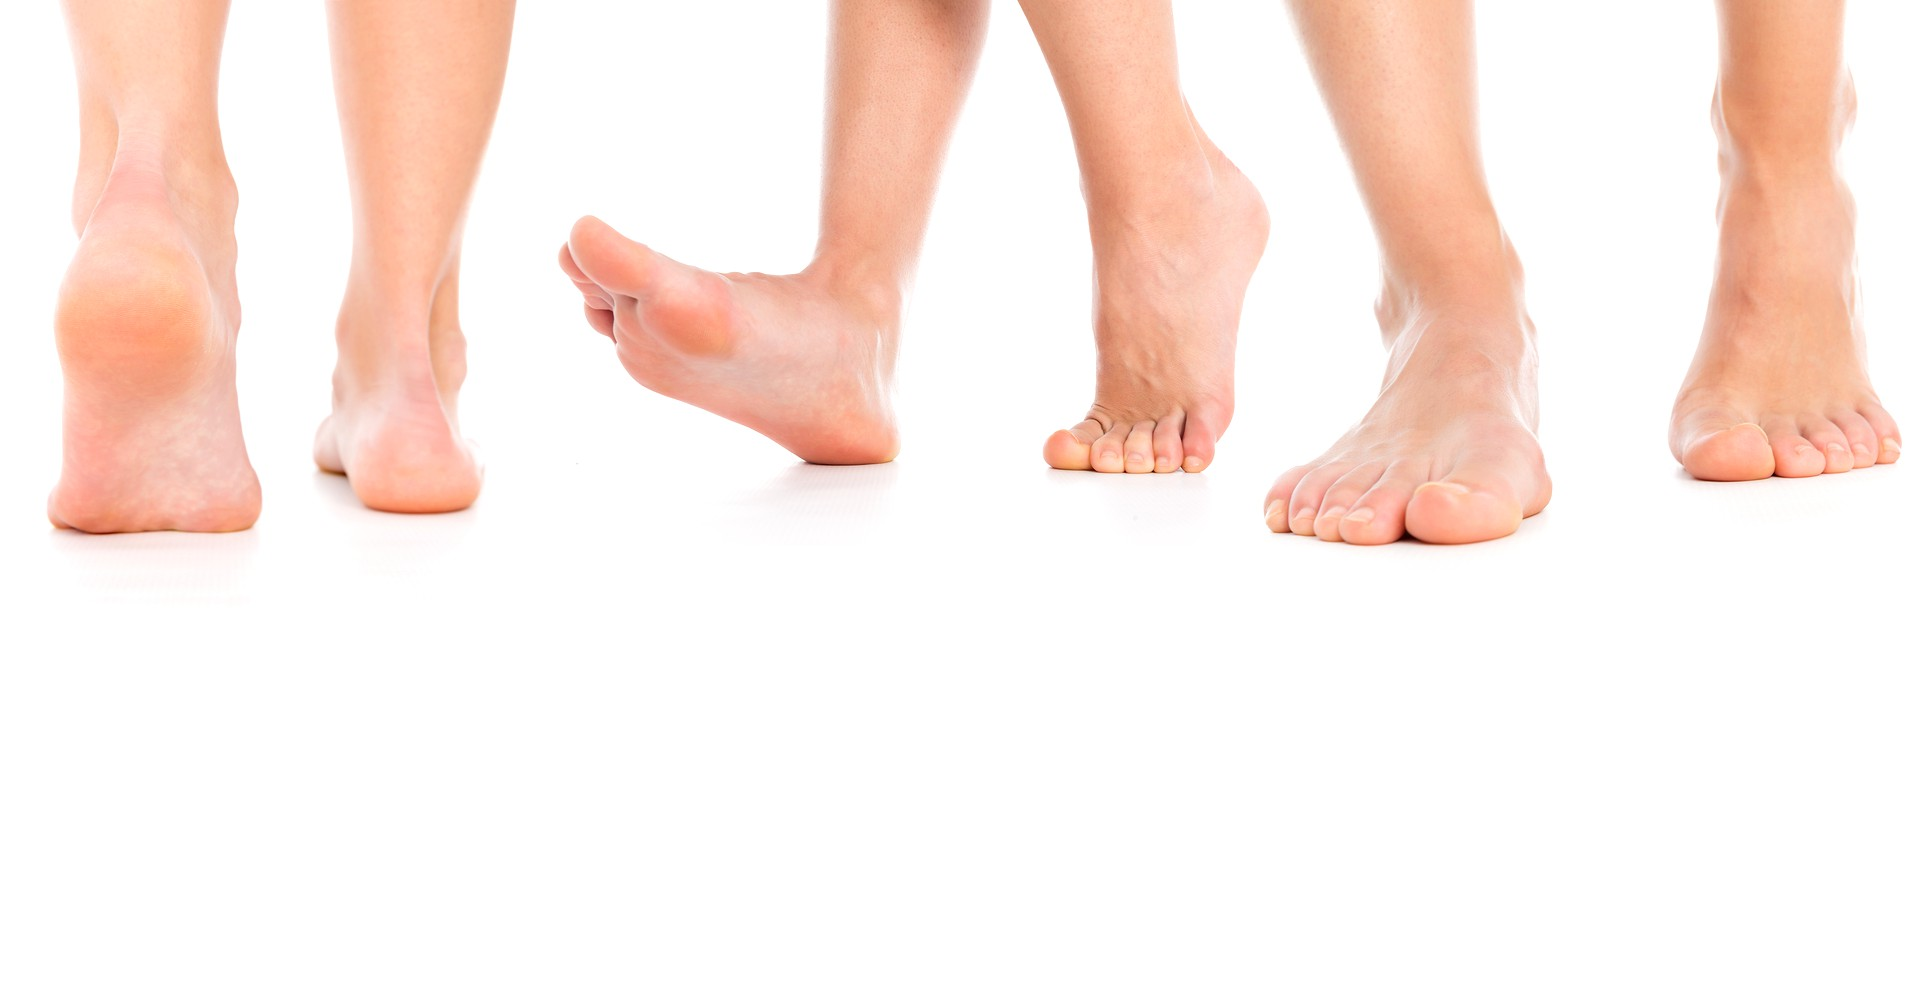 Foot Care edmonton Alberta